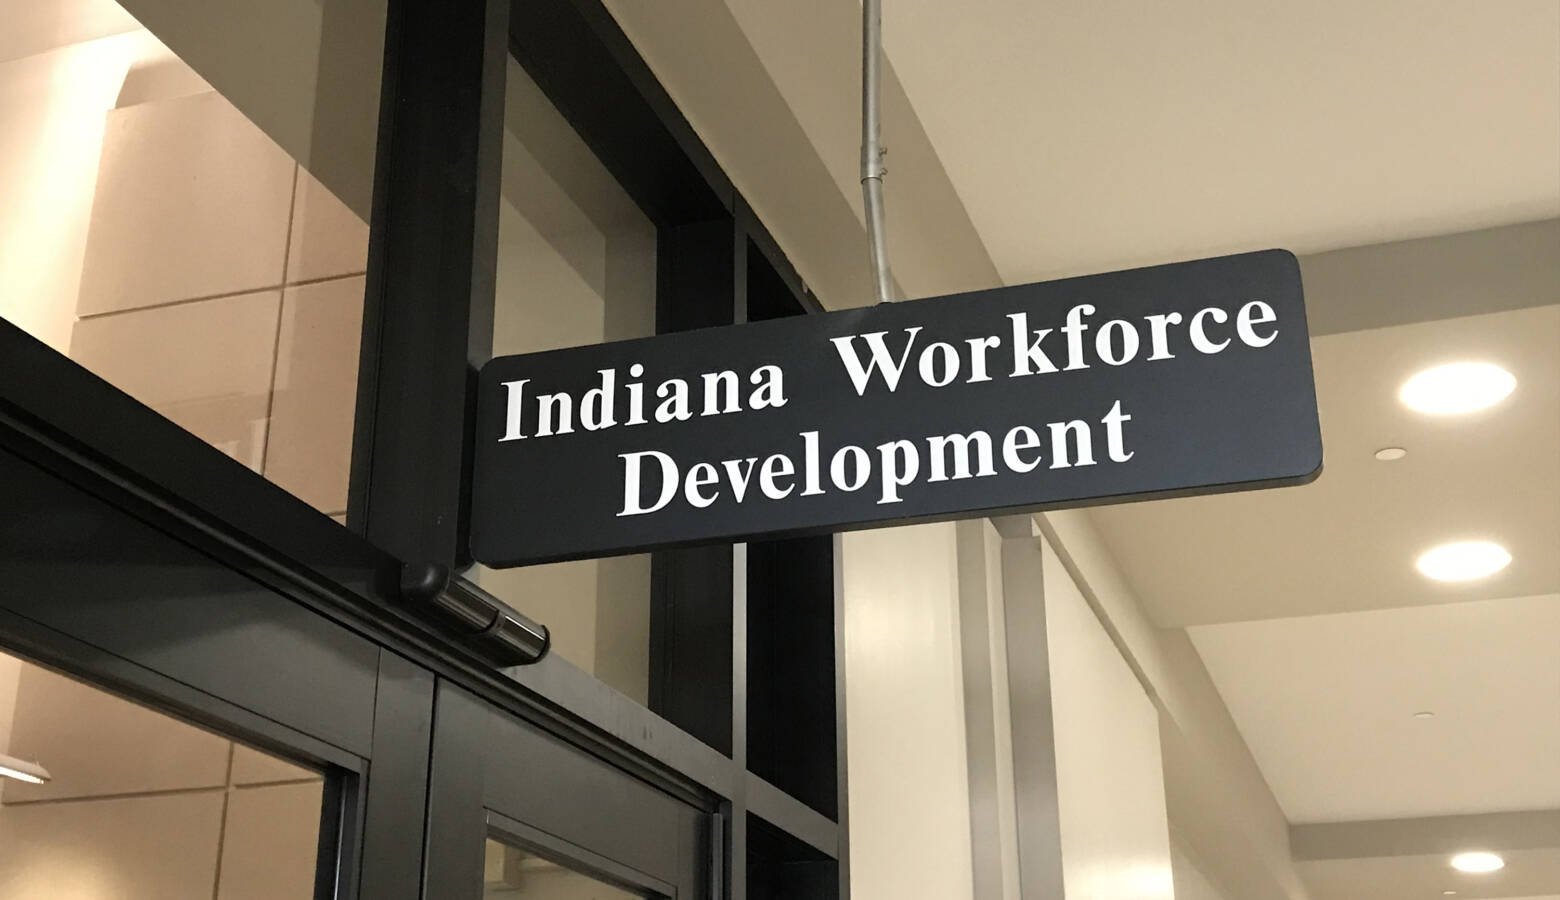 The state lost more than 3,200 jobs total in 2019. (Brandon Smith/IPB News)